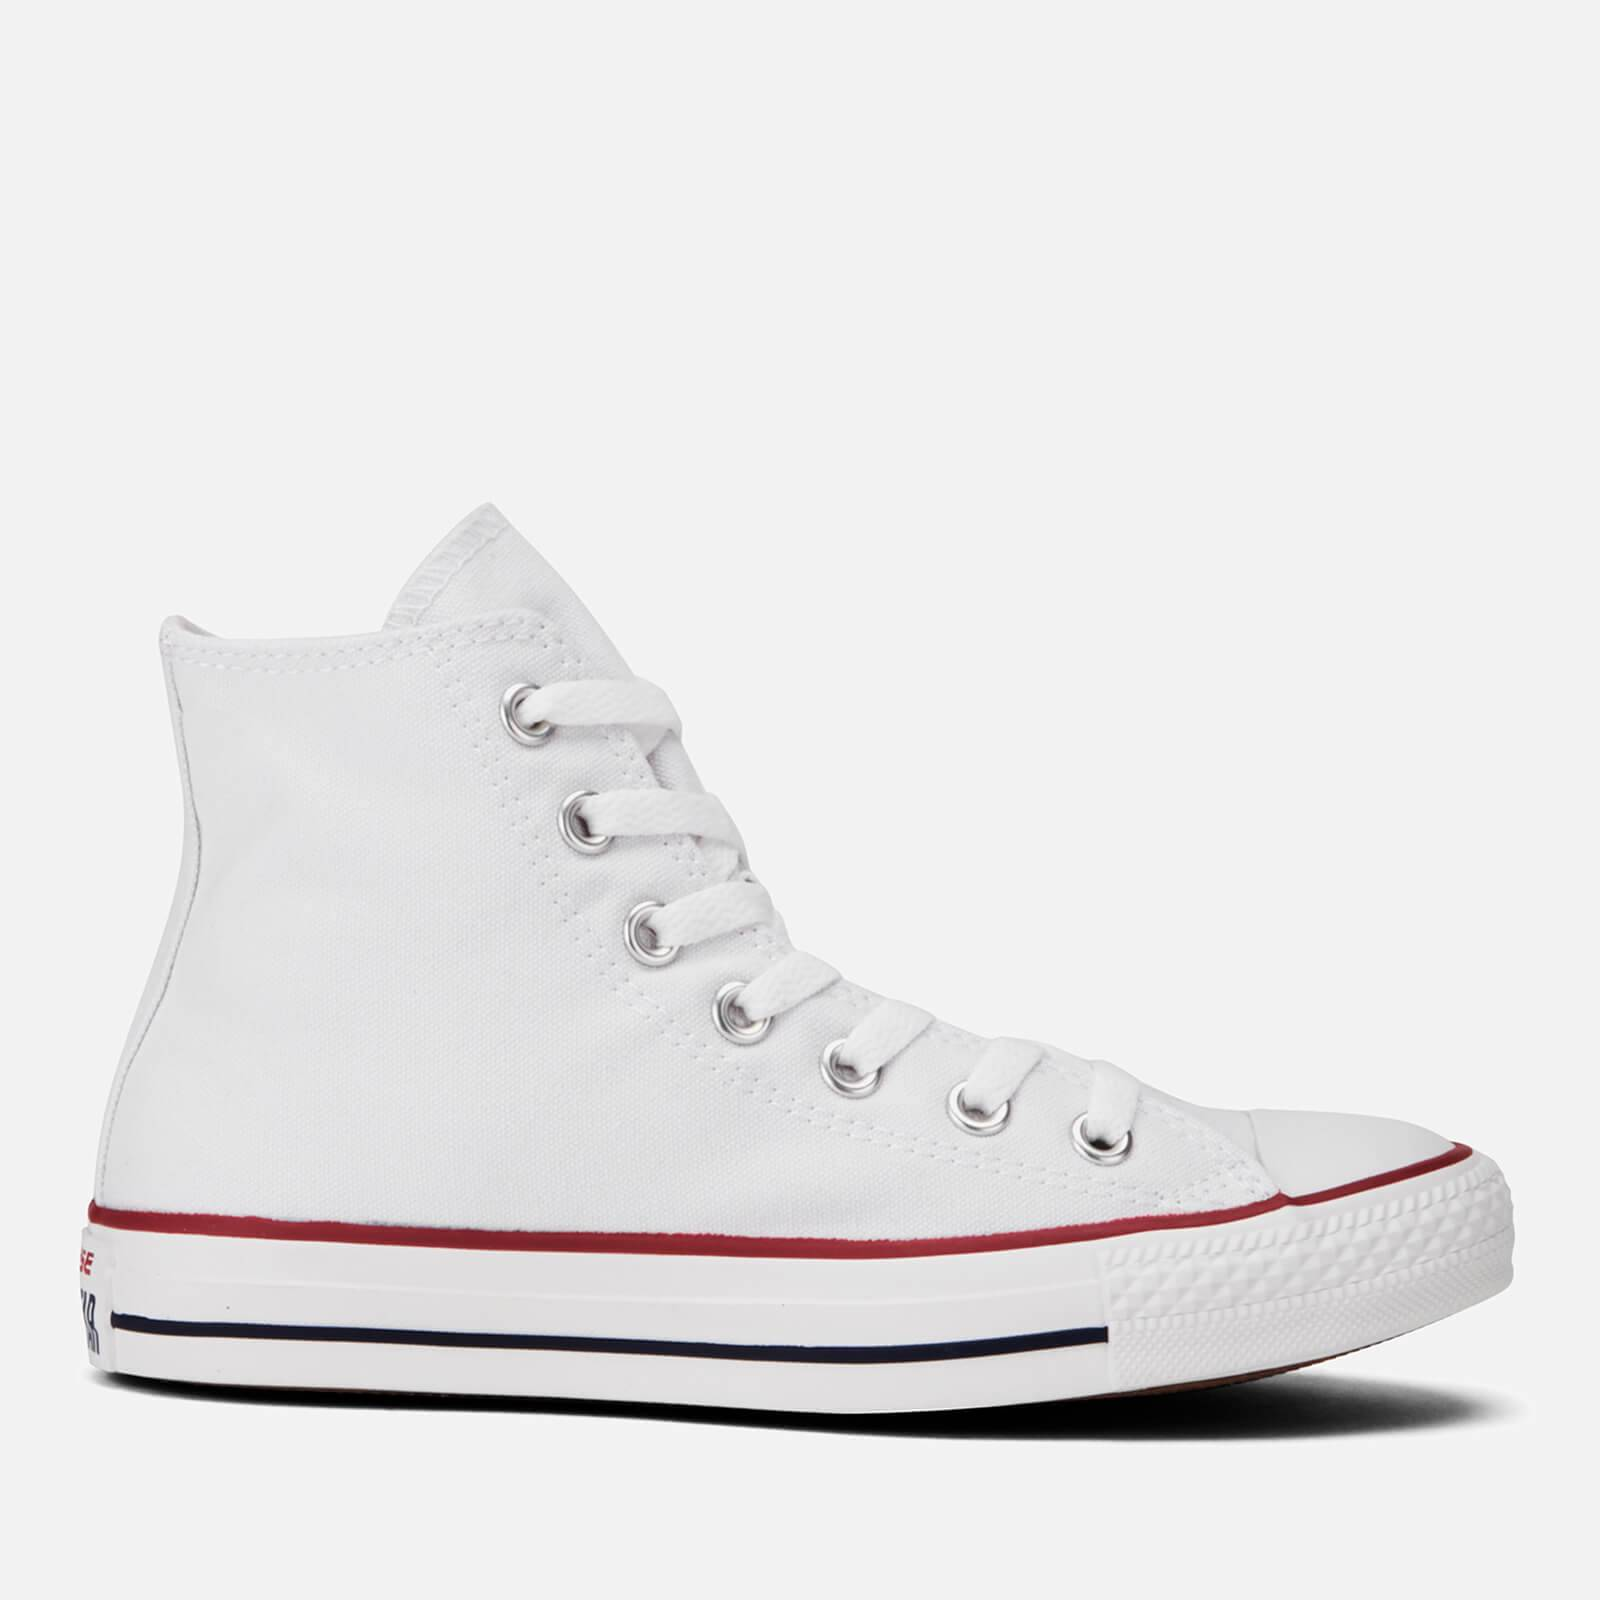 Converse Chuck Taylor All Star Canvas Hi-Top Trainers - Optical White - UK 8